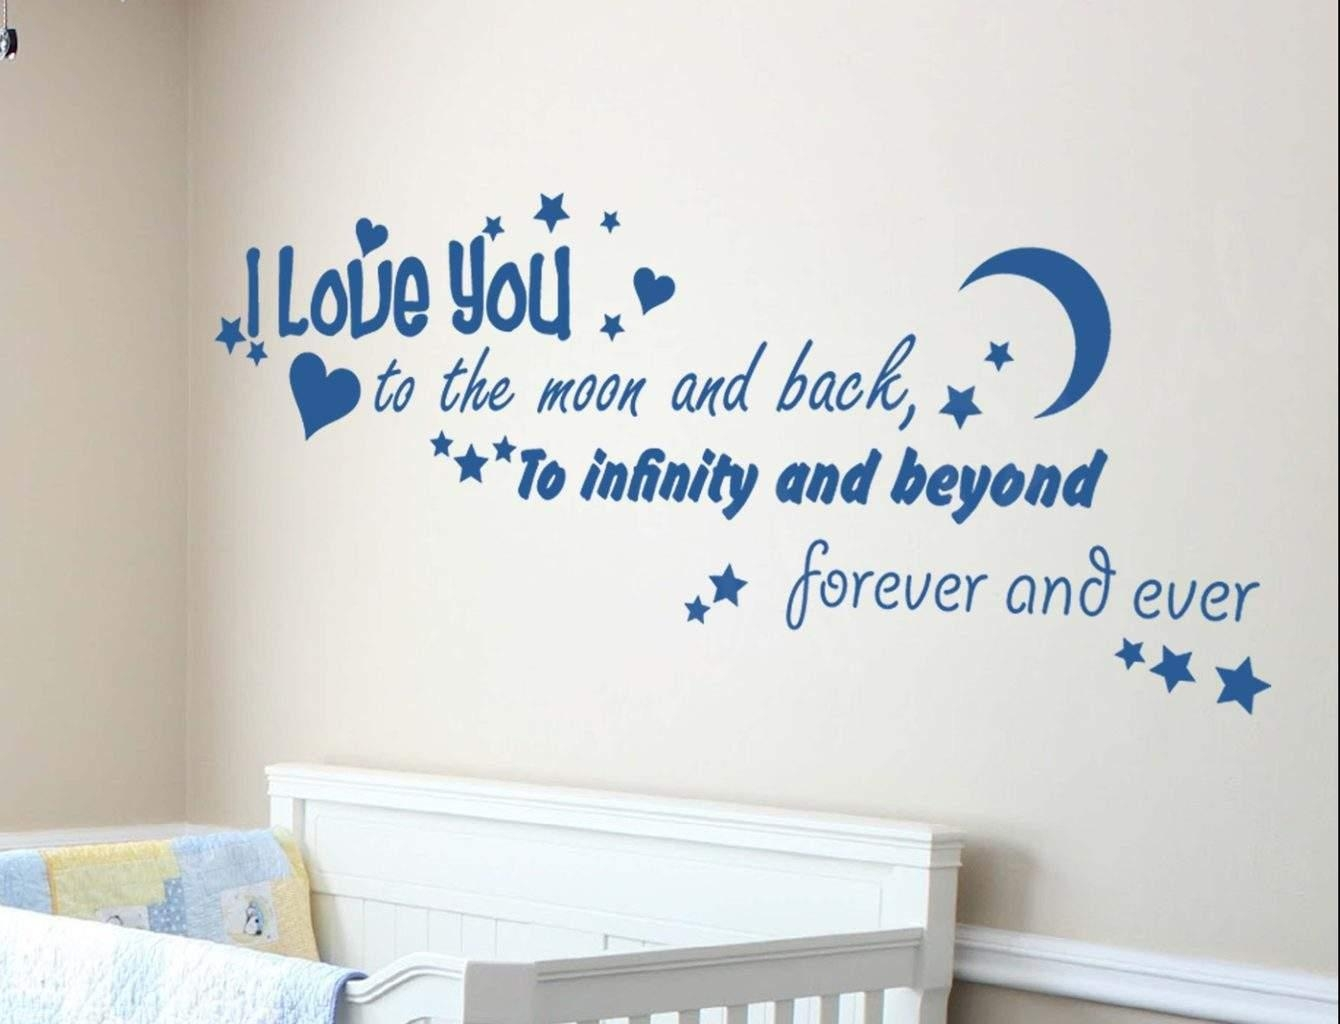 Spread Love With Love Based Wall Decals Pertaining To Love You To The Moon And Back Wall Art (Image 18 of 20)